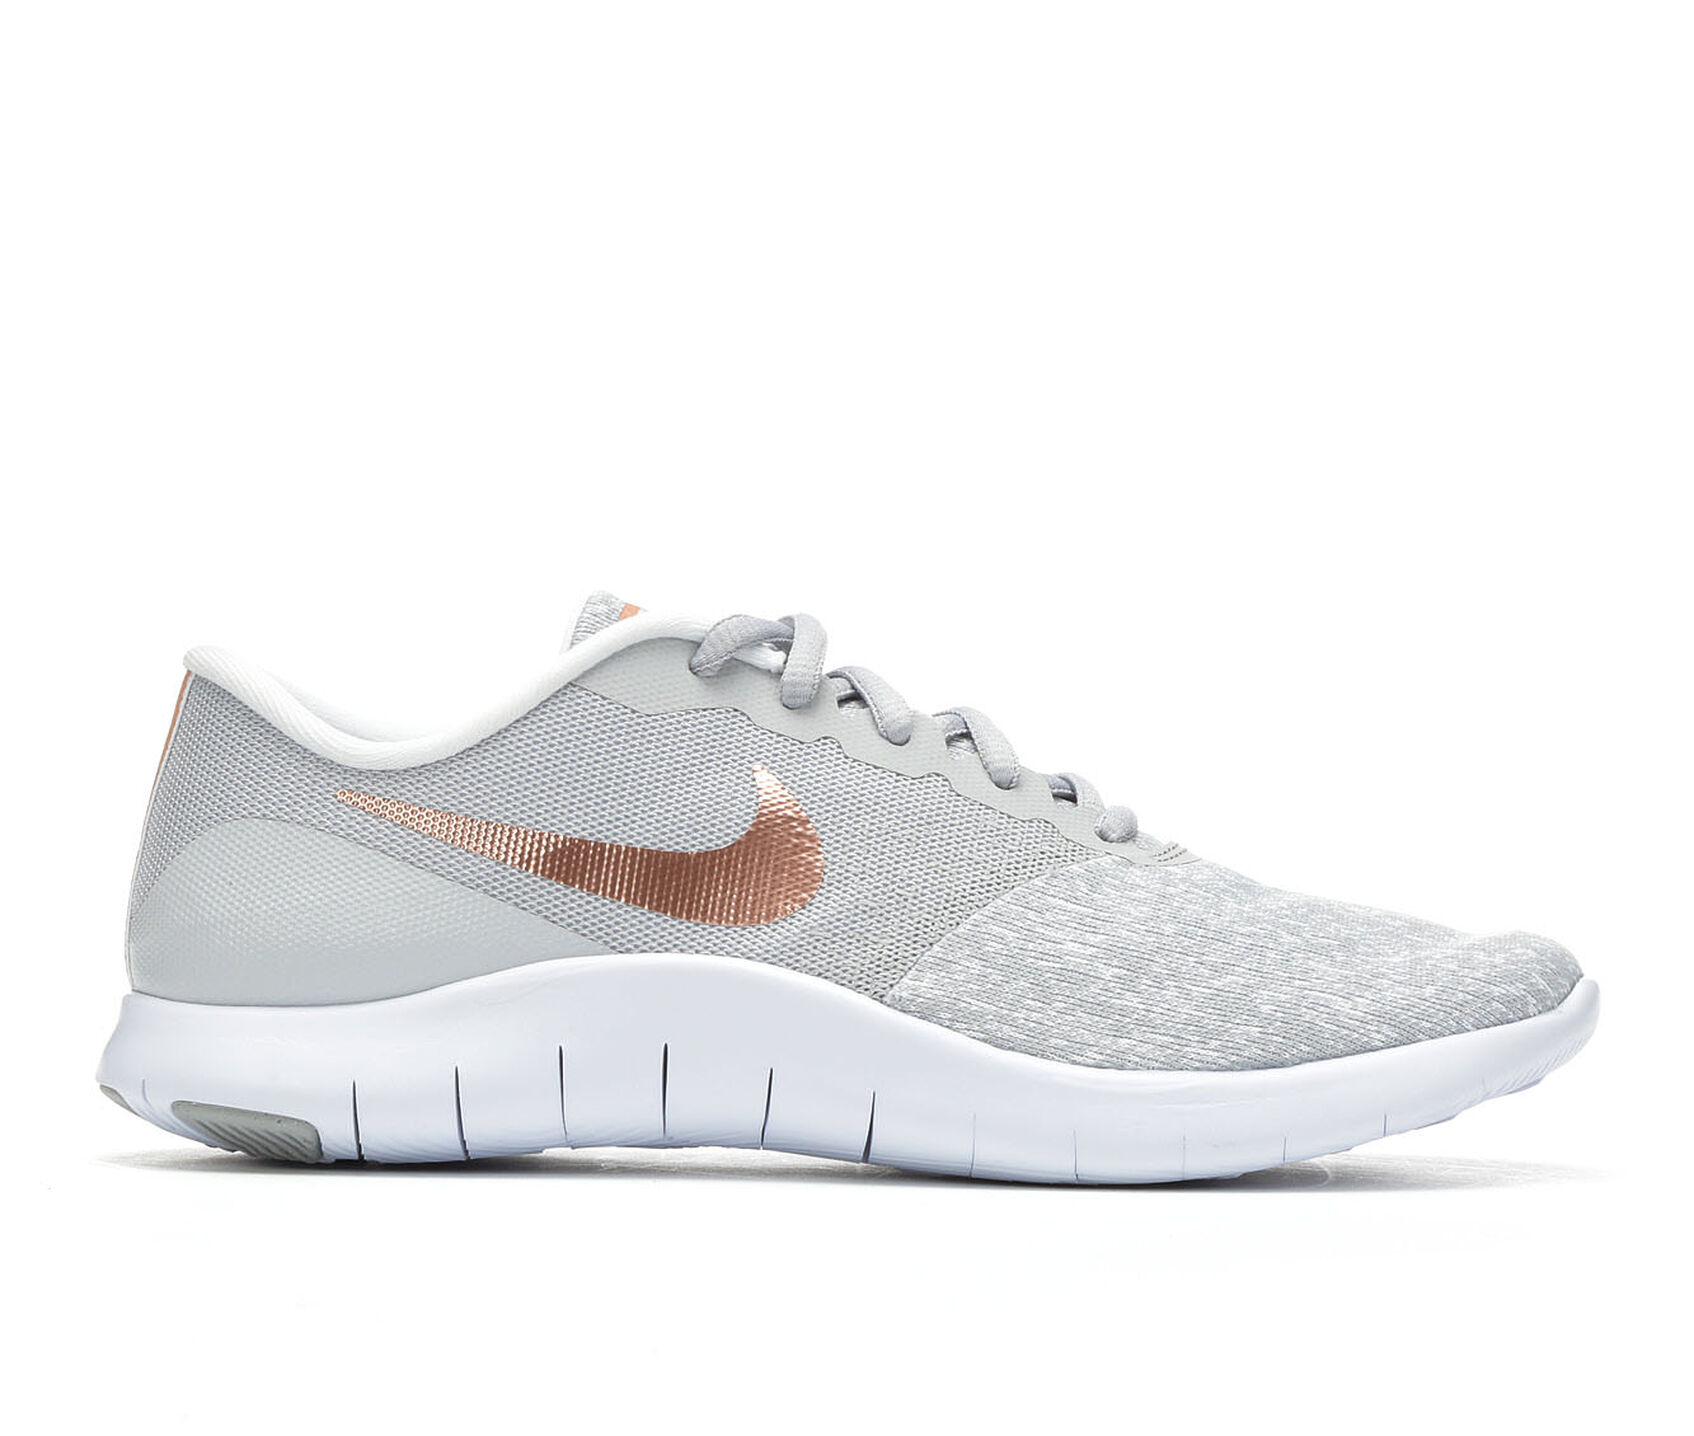 c081e828a48c ... Nike Flex Contact Running Shoes. Previous